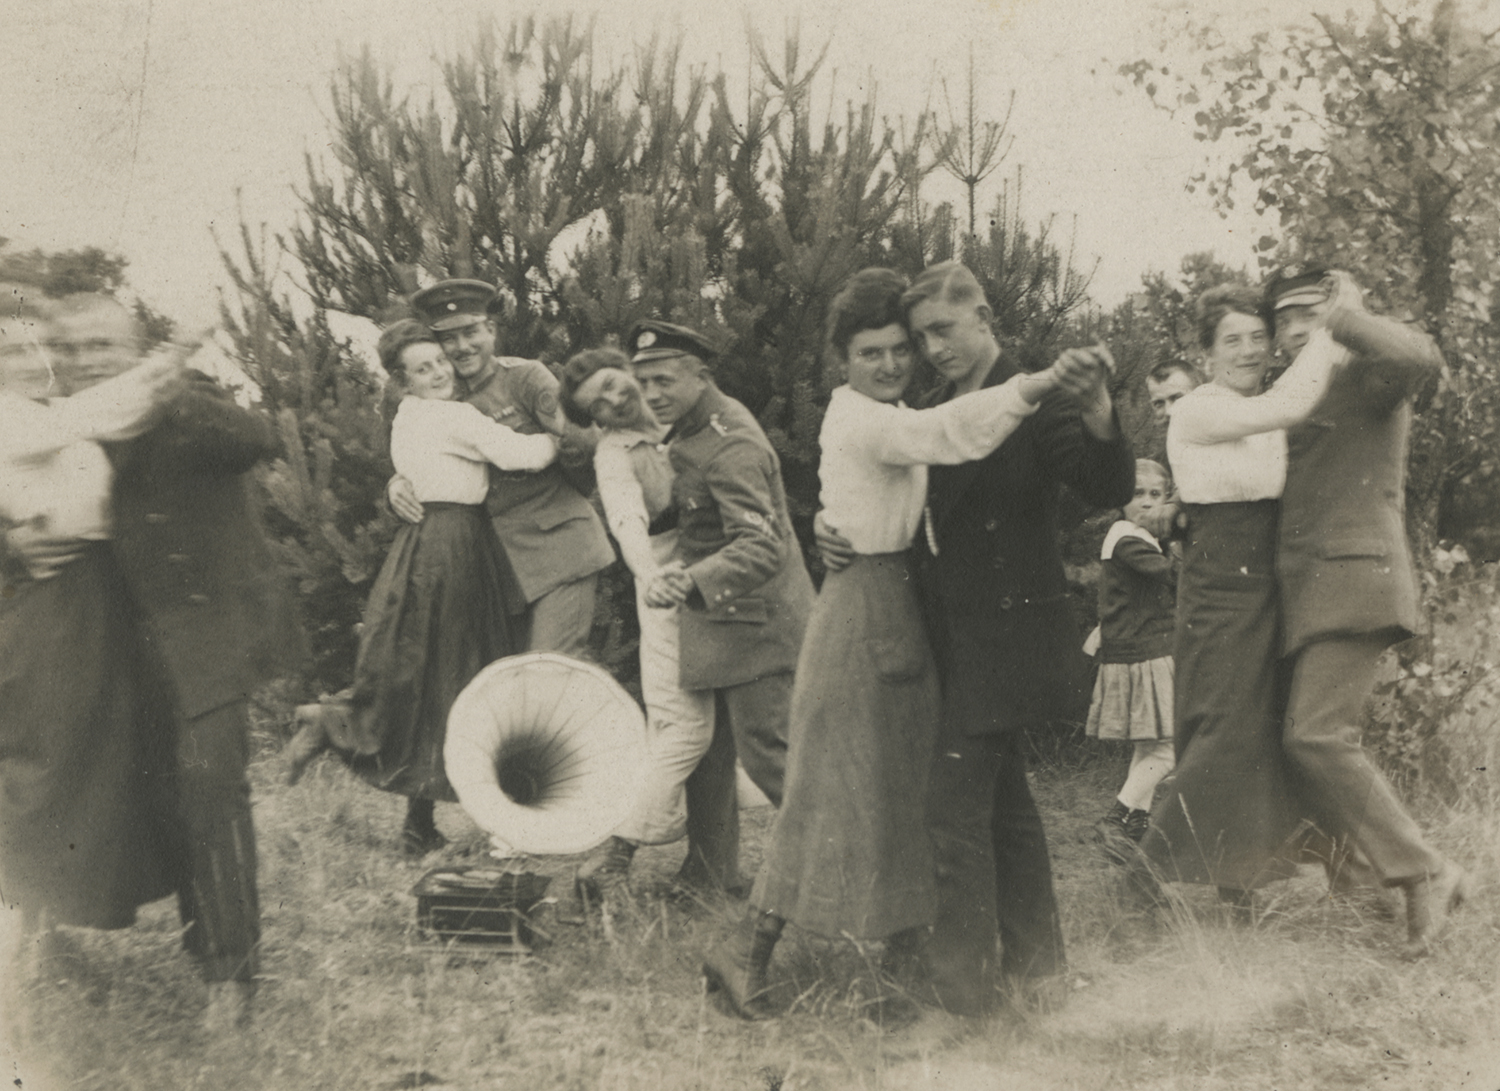 Men, women, and a child dancing outdoors by a gramophone. ca. 1914-1918